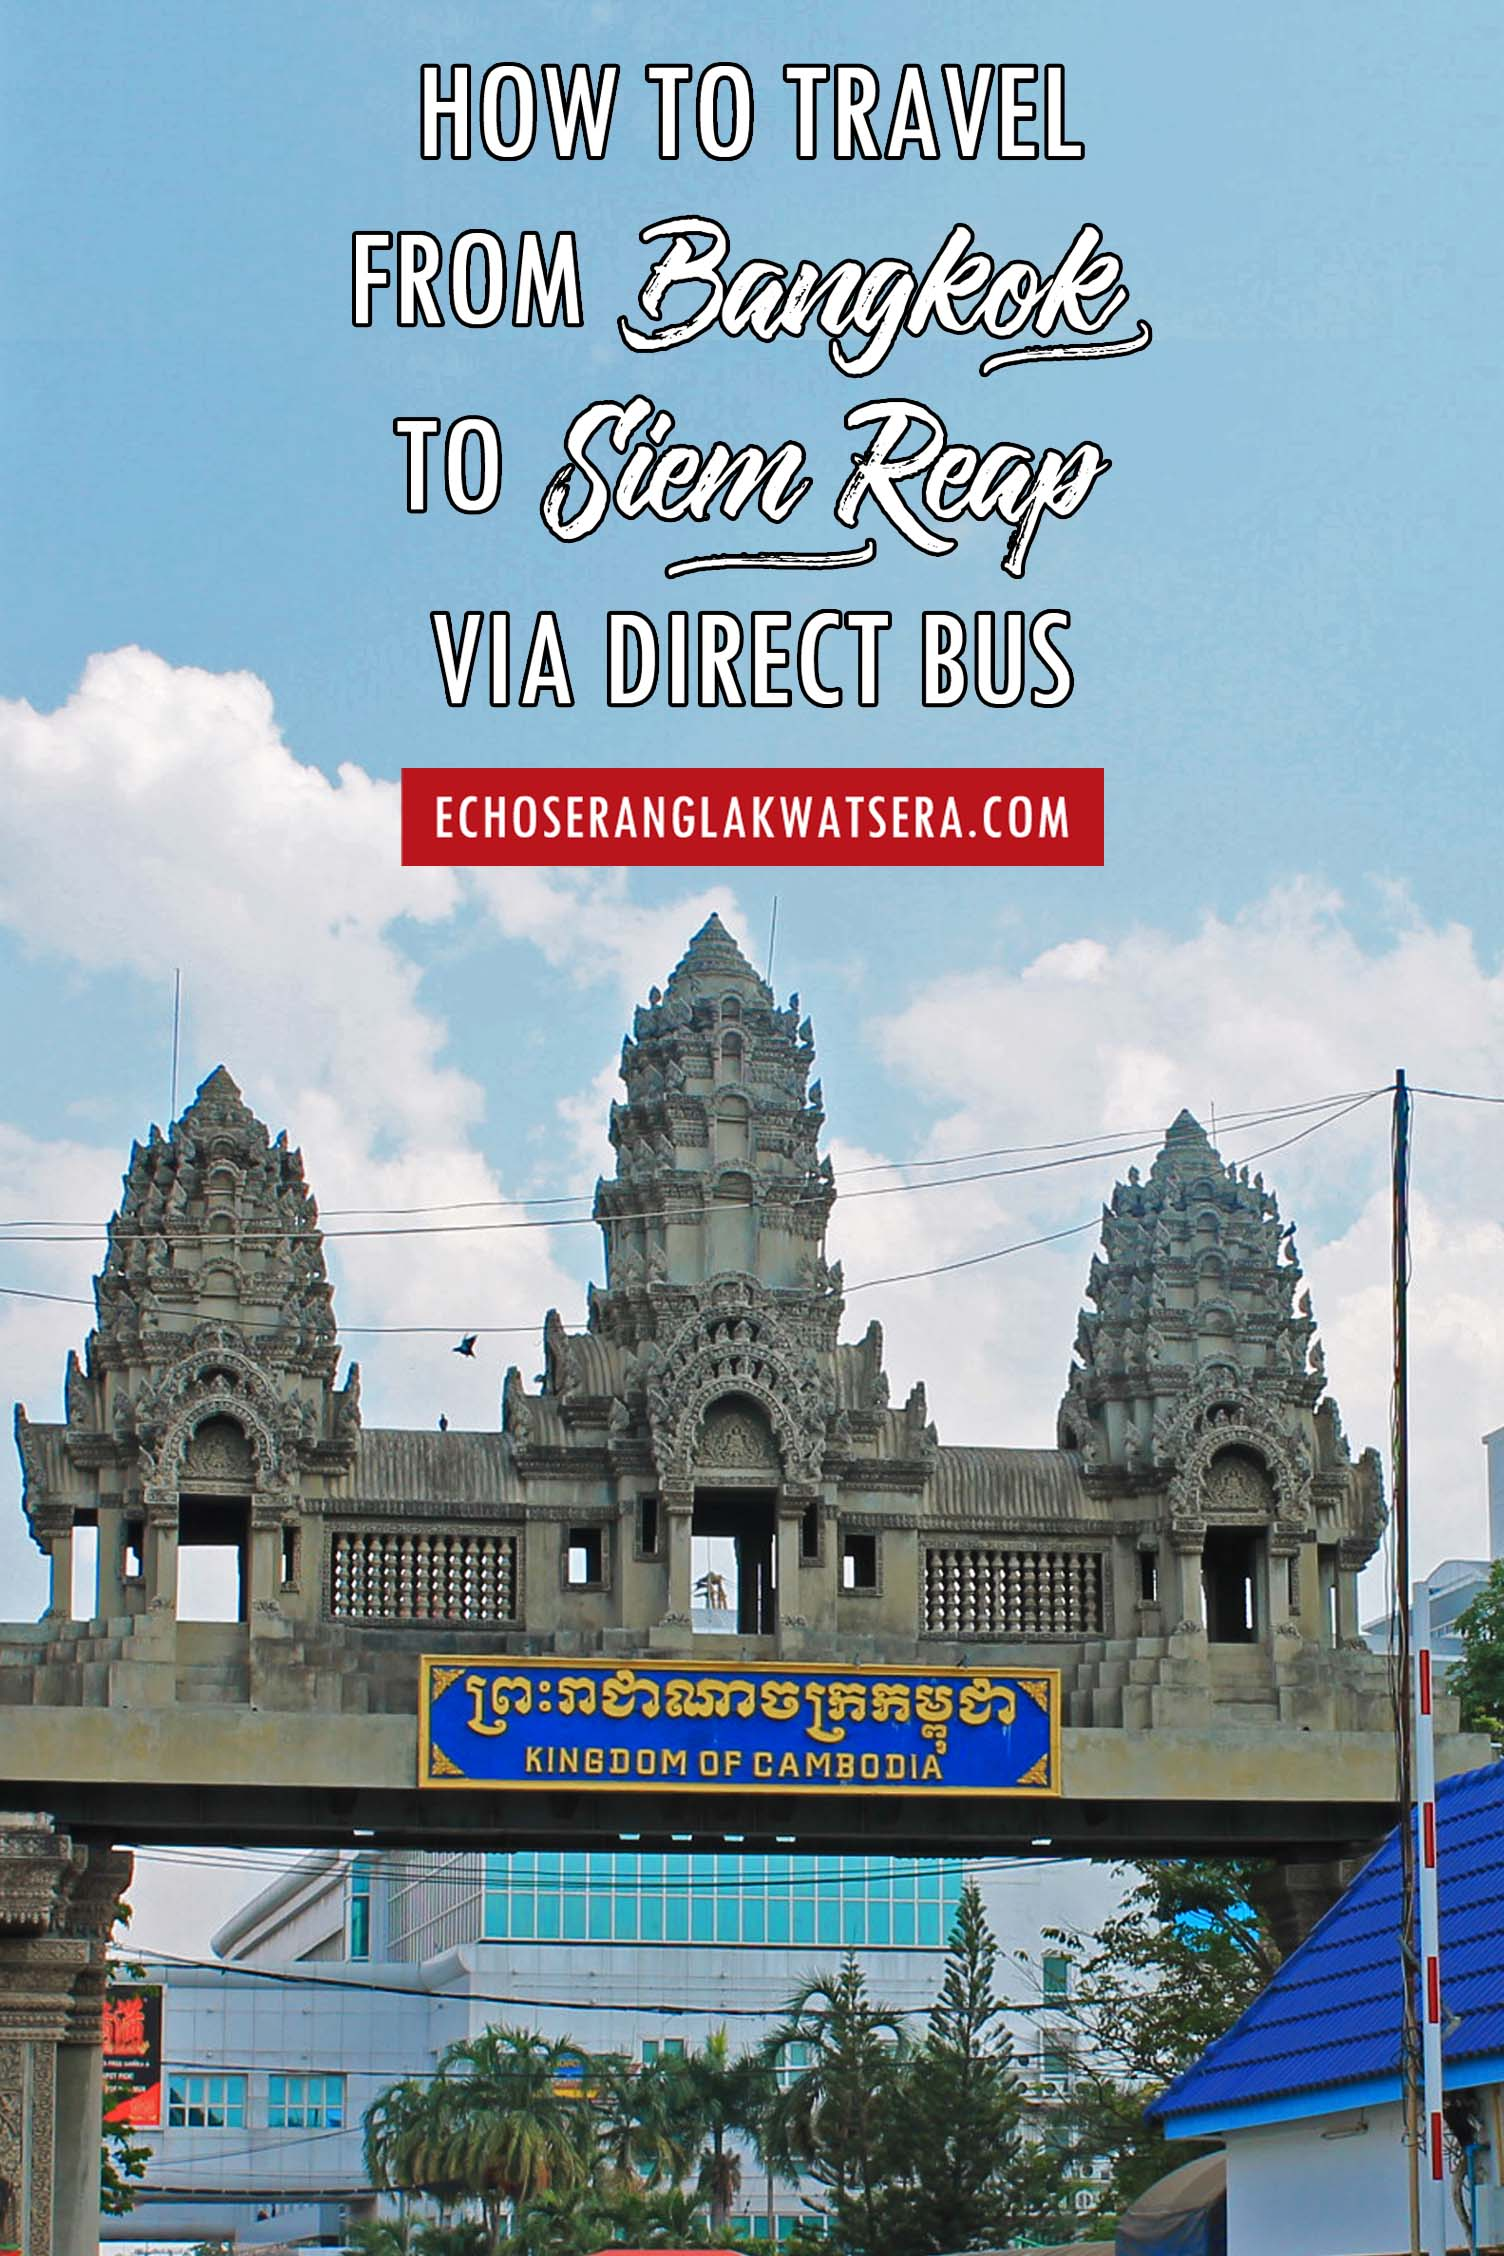 Border Crossing Bangkok Siem Reap Direct Bus